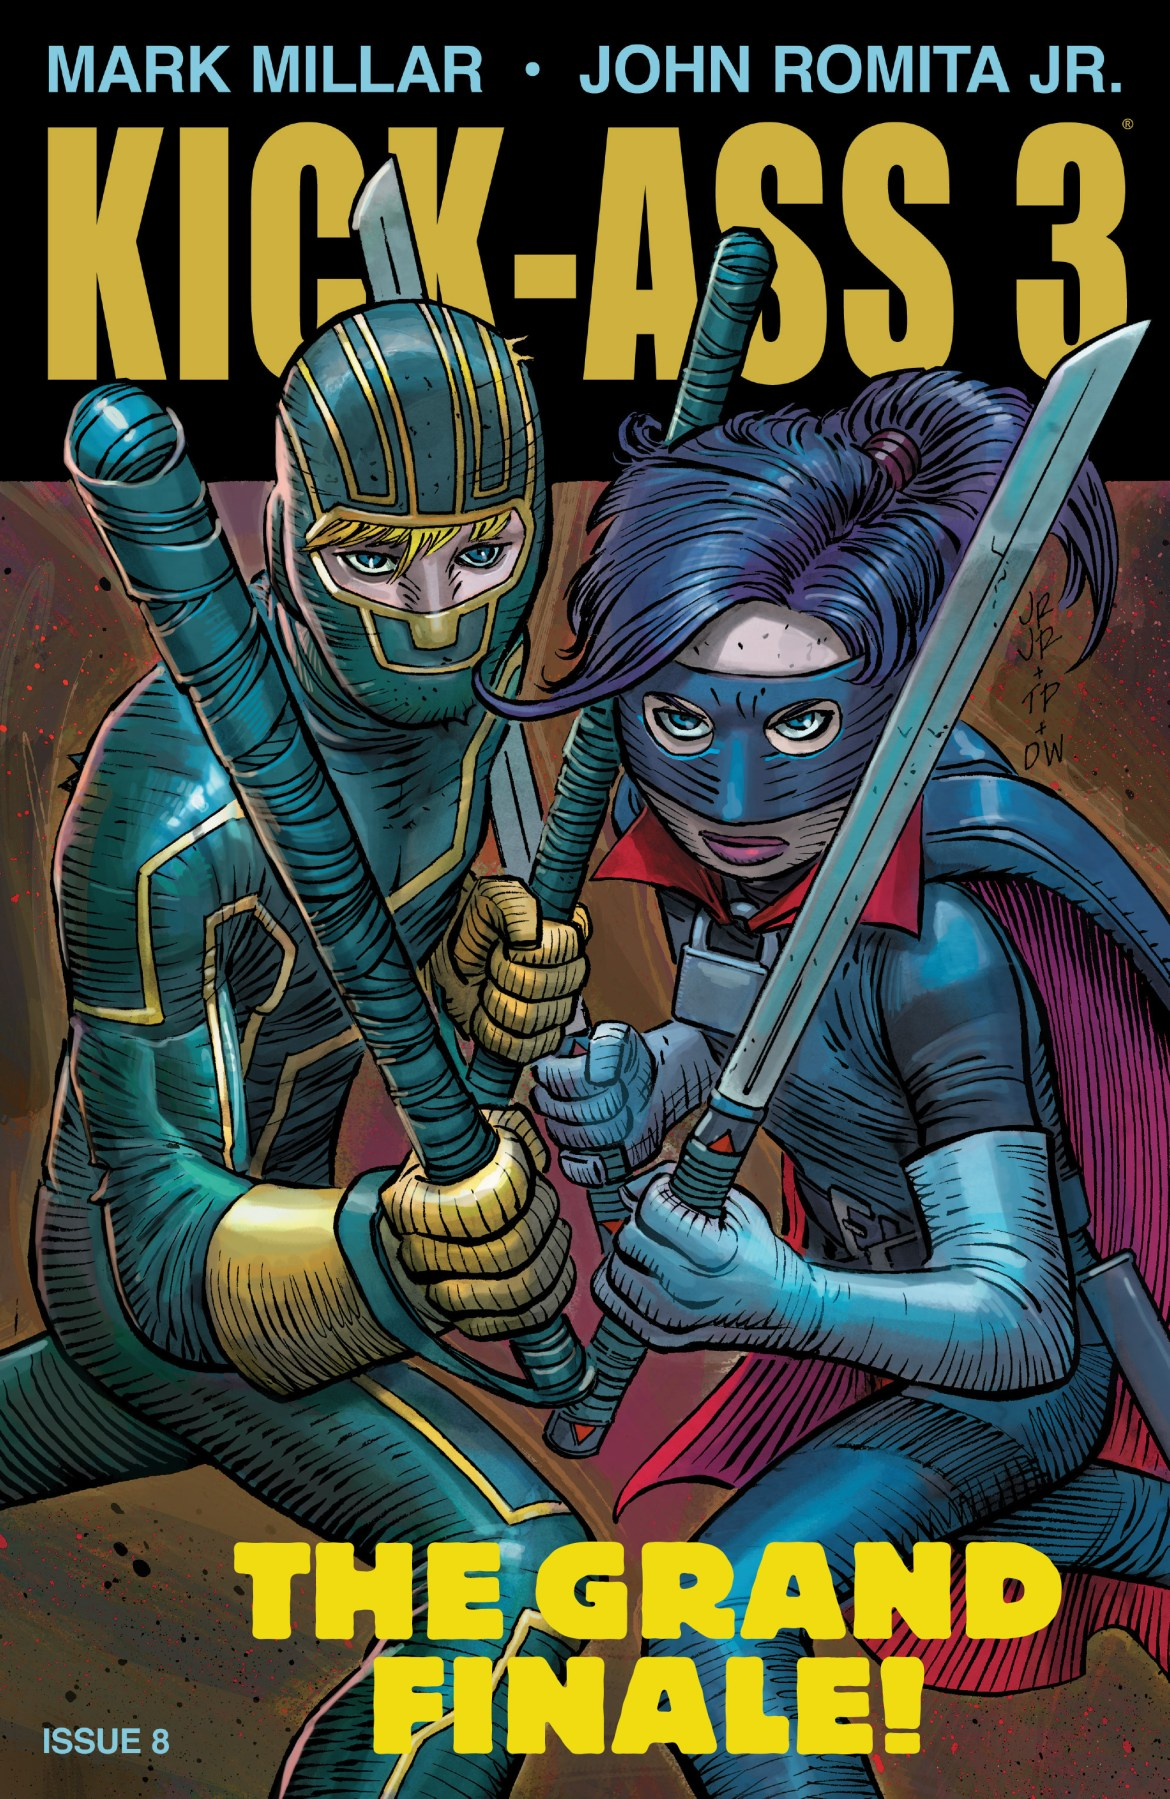 Review: Kick Ass 3 #8